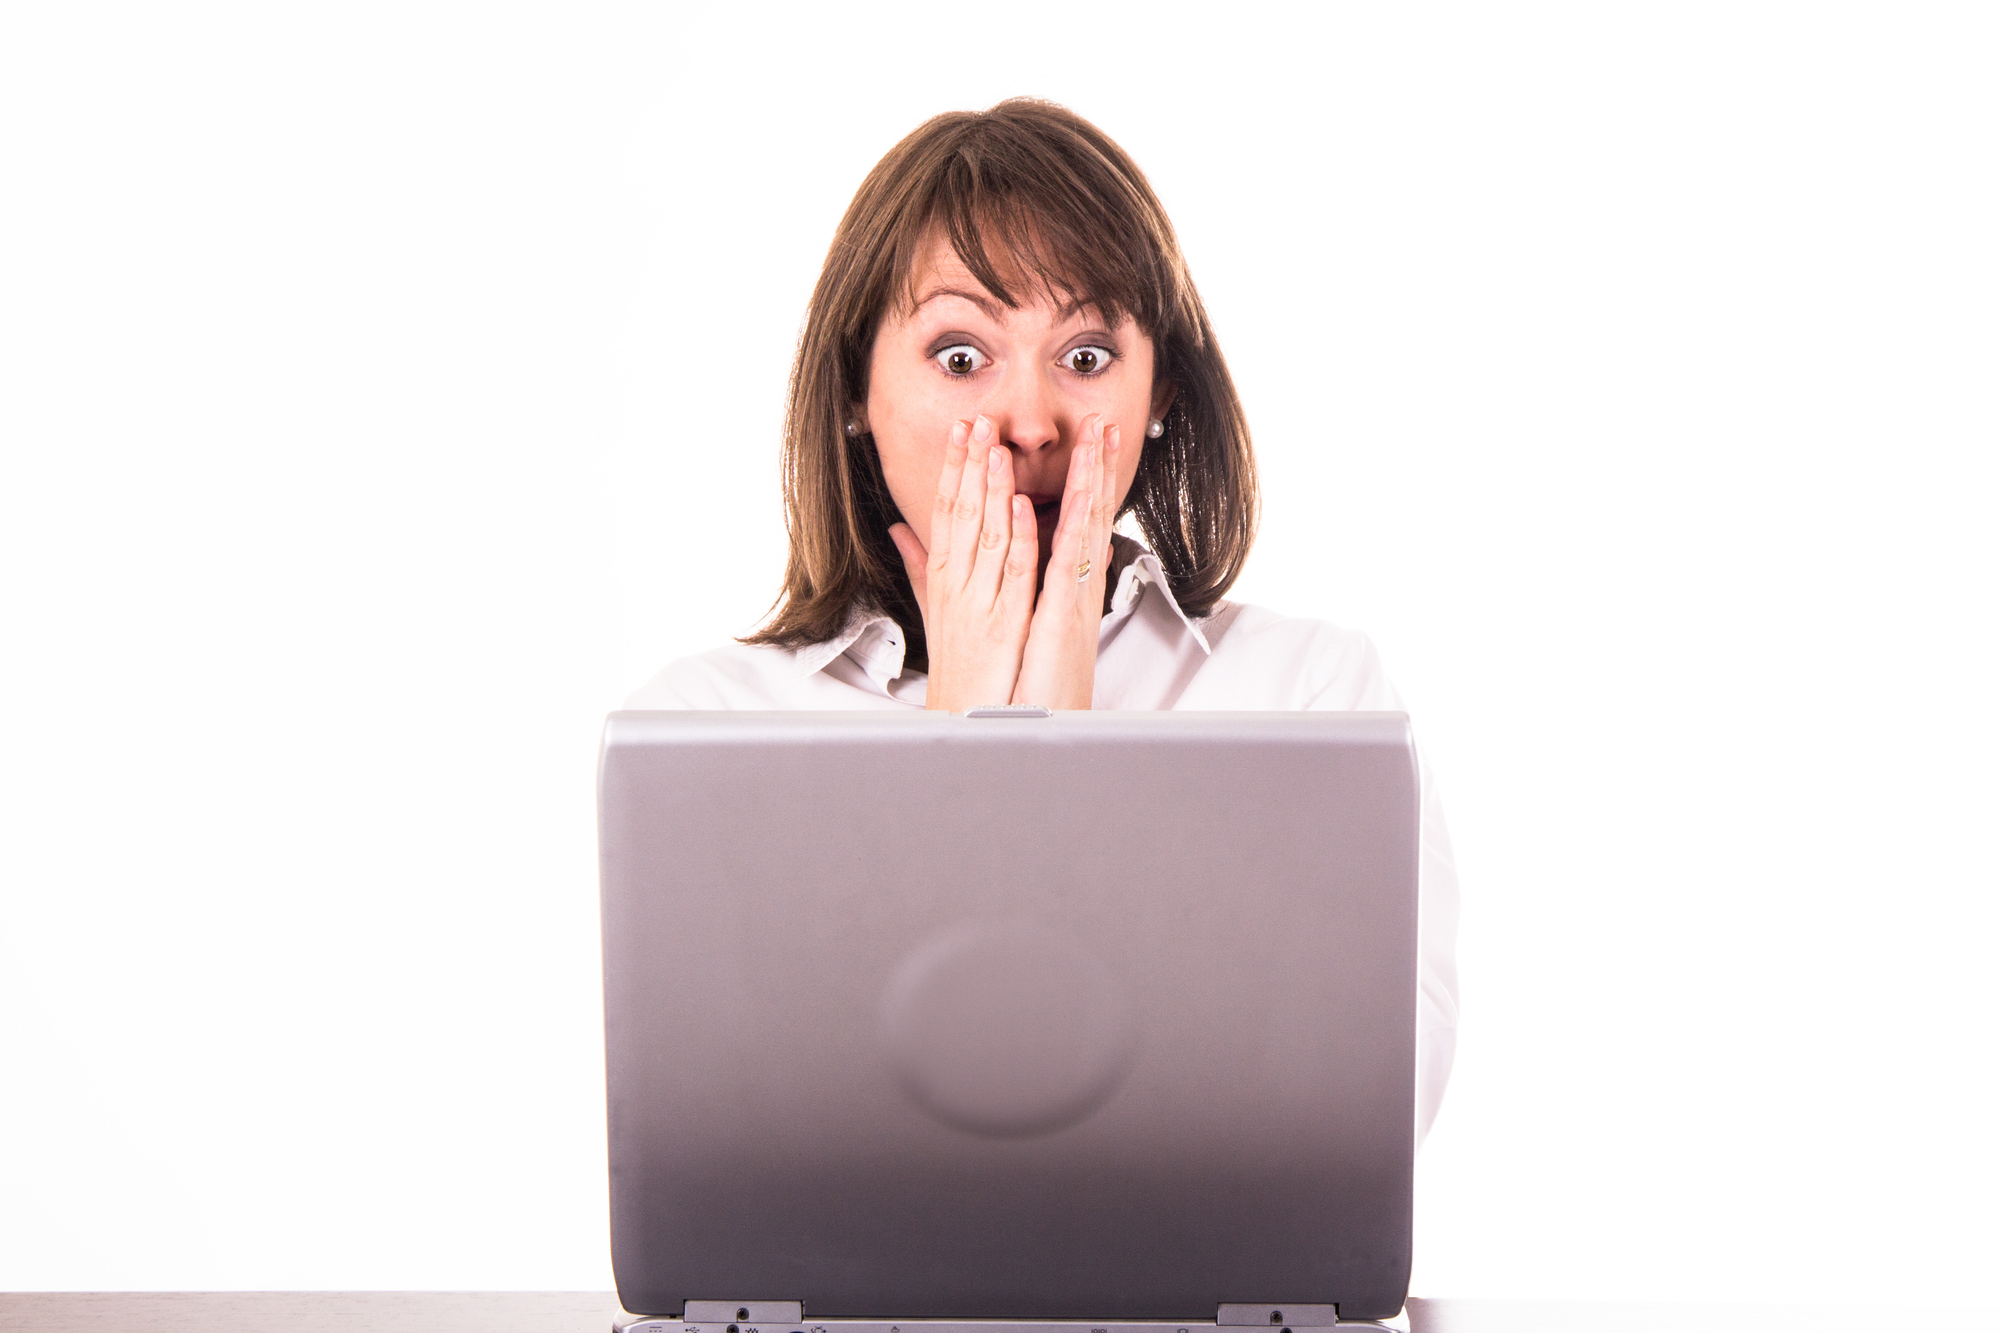 Woman looking at laptop with surprised expression on face